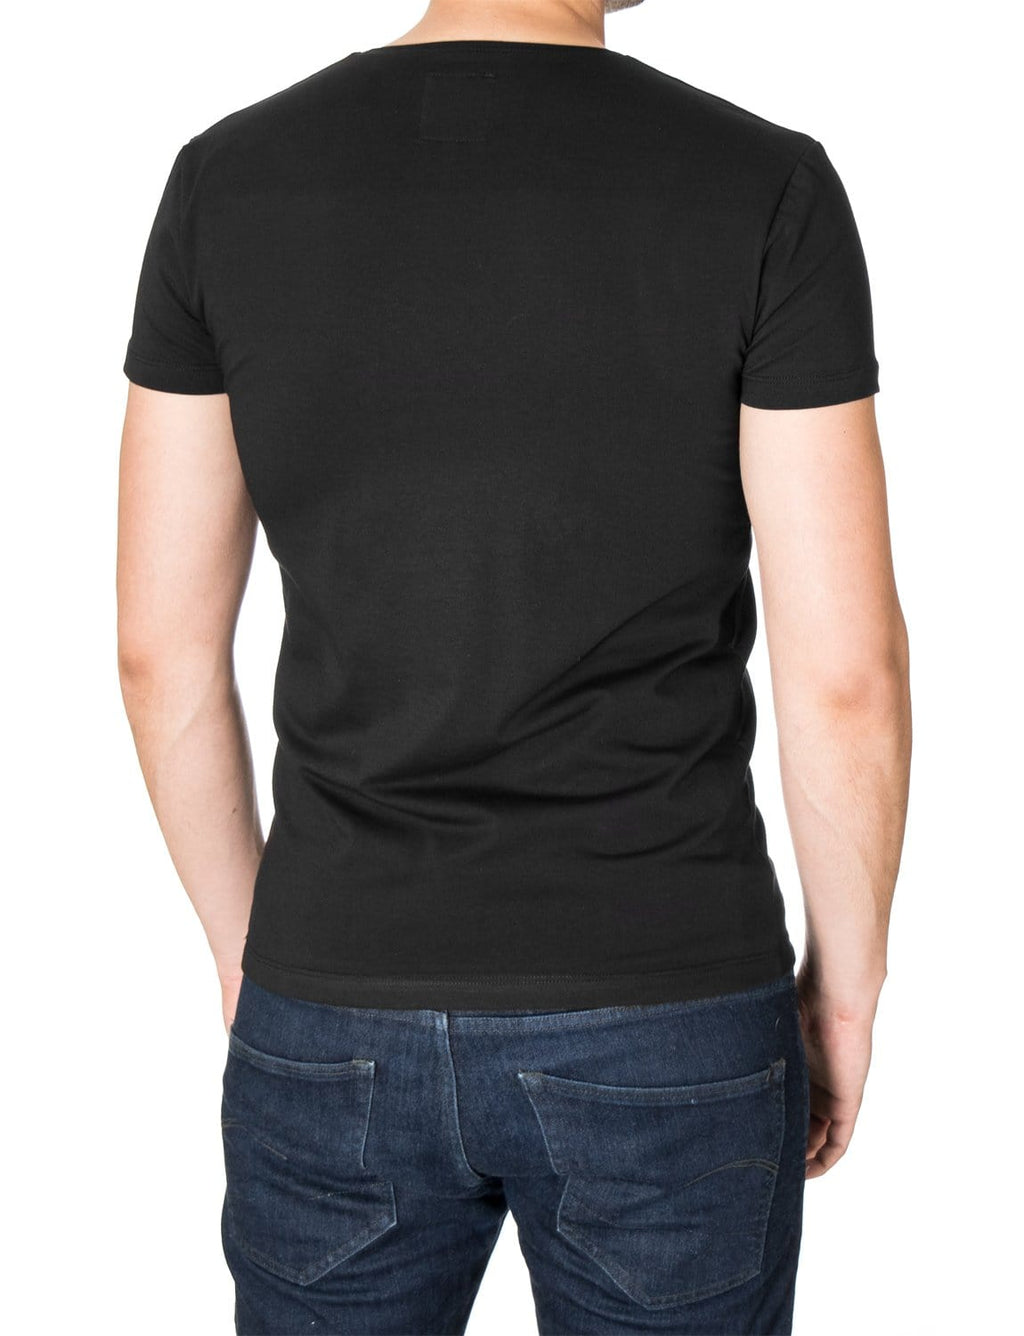 Mens printed t-shirt black (MOD2004VN)